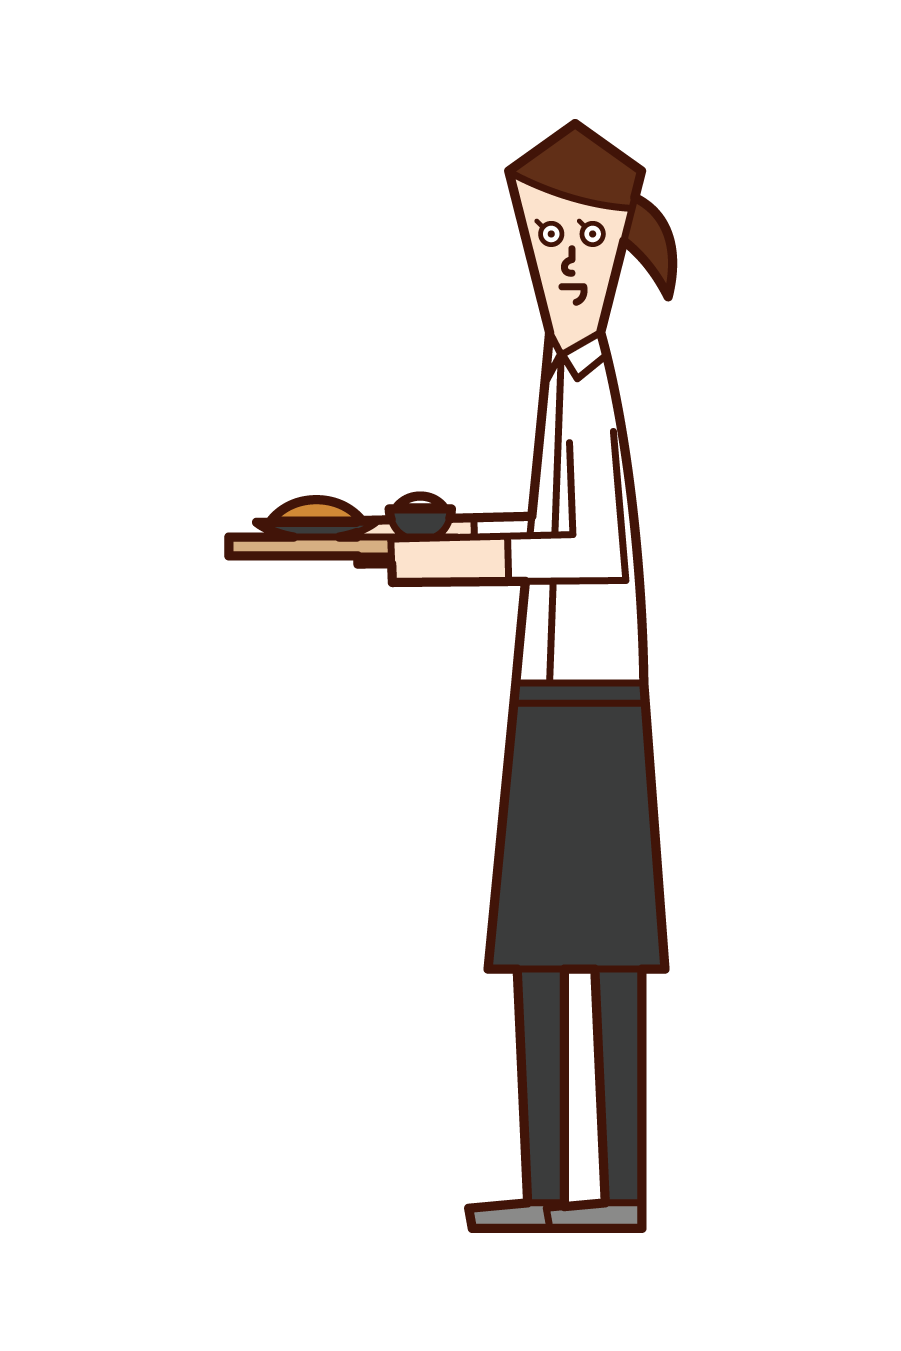 Illustration of a clerk (woman) at a restaurant or café